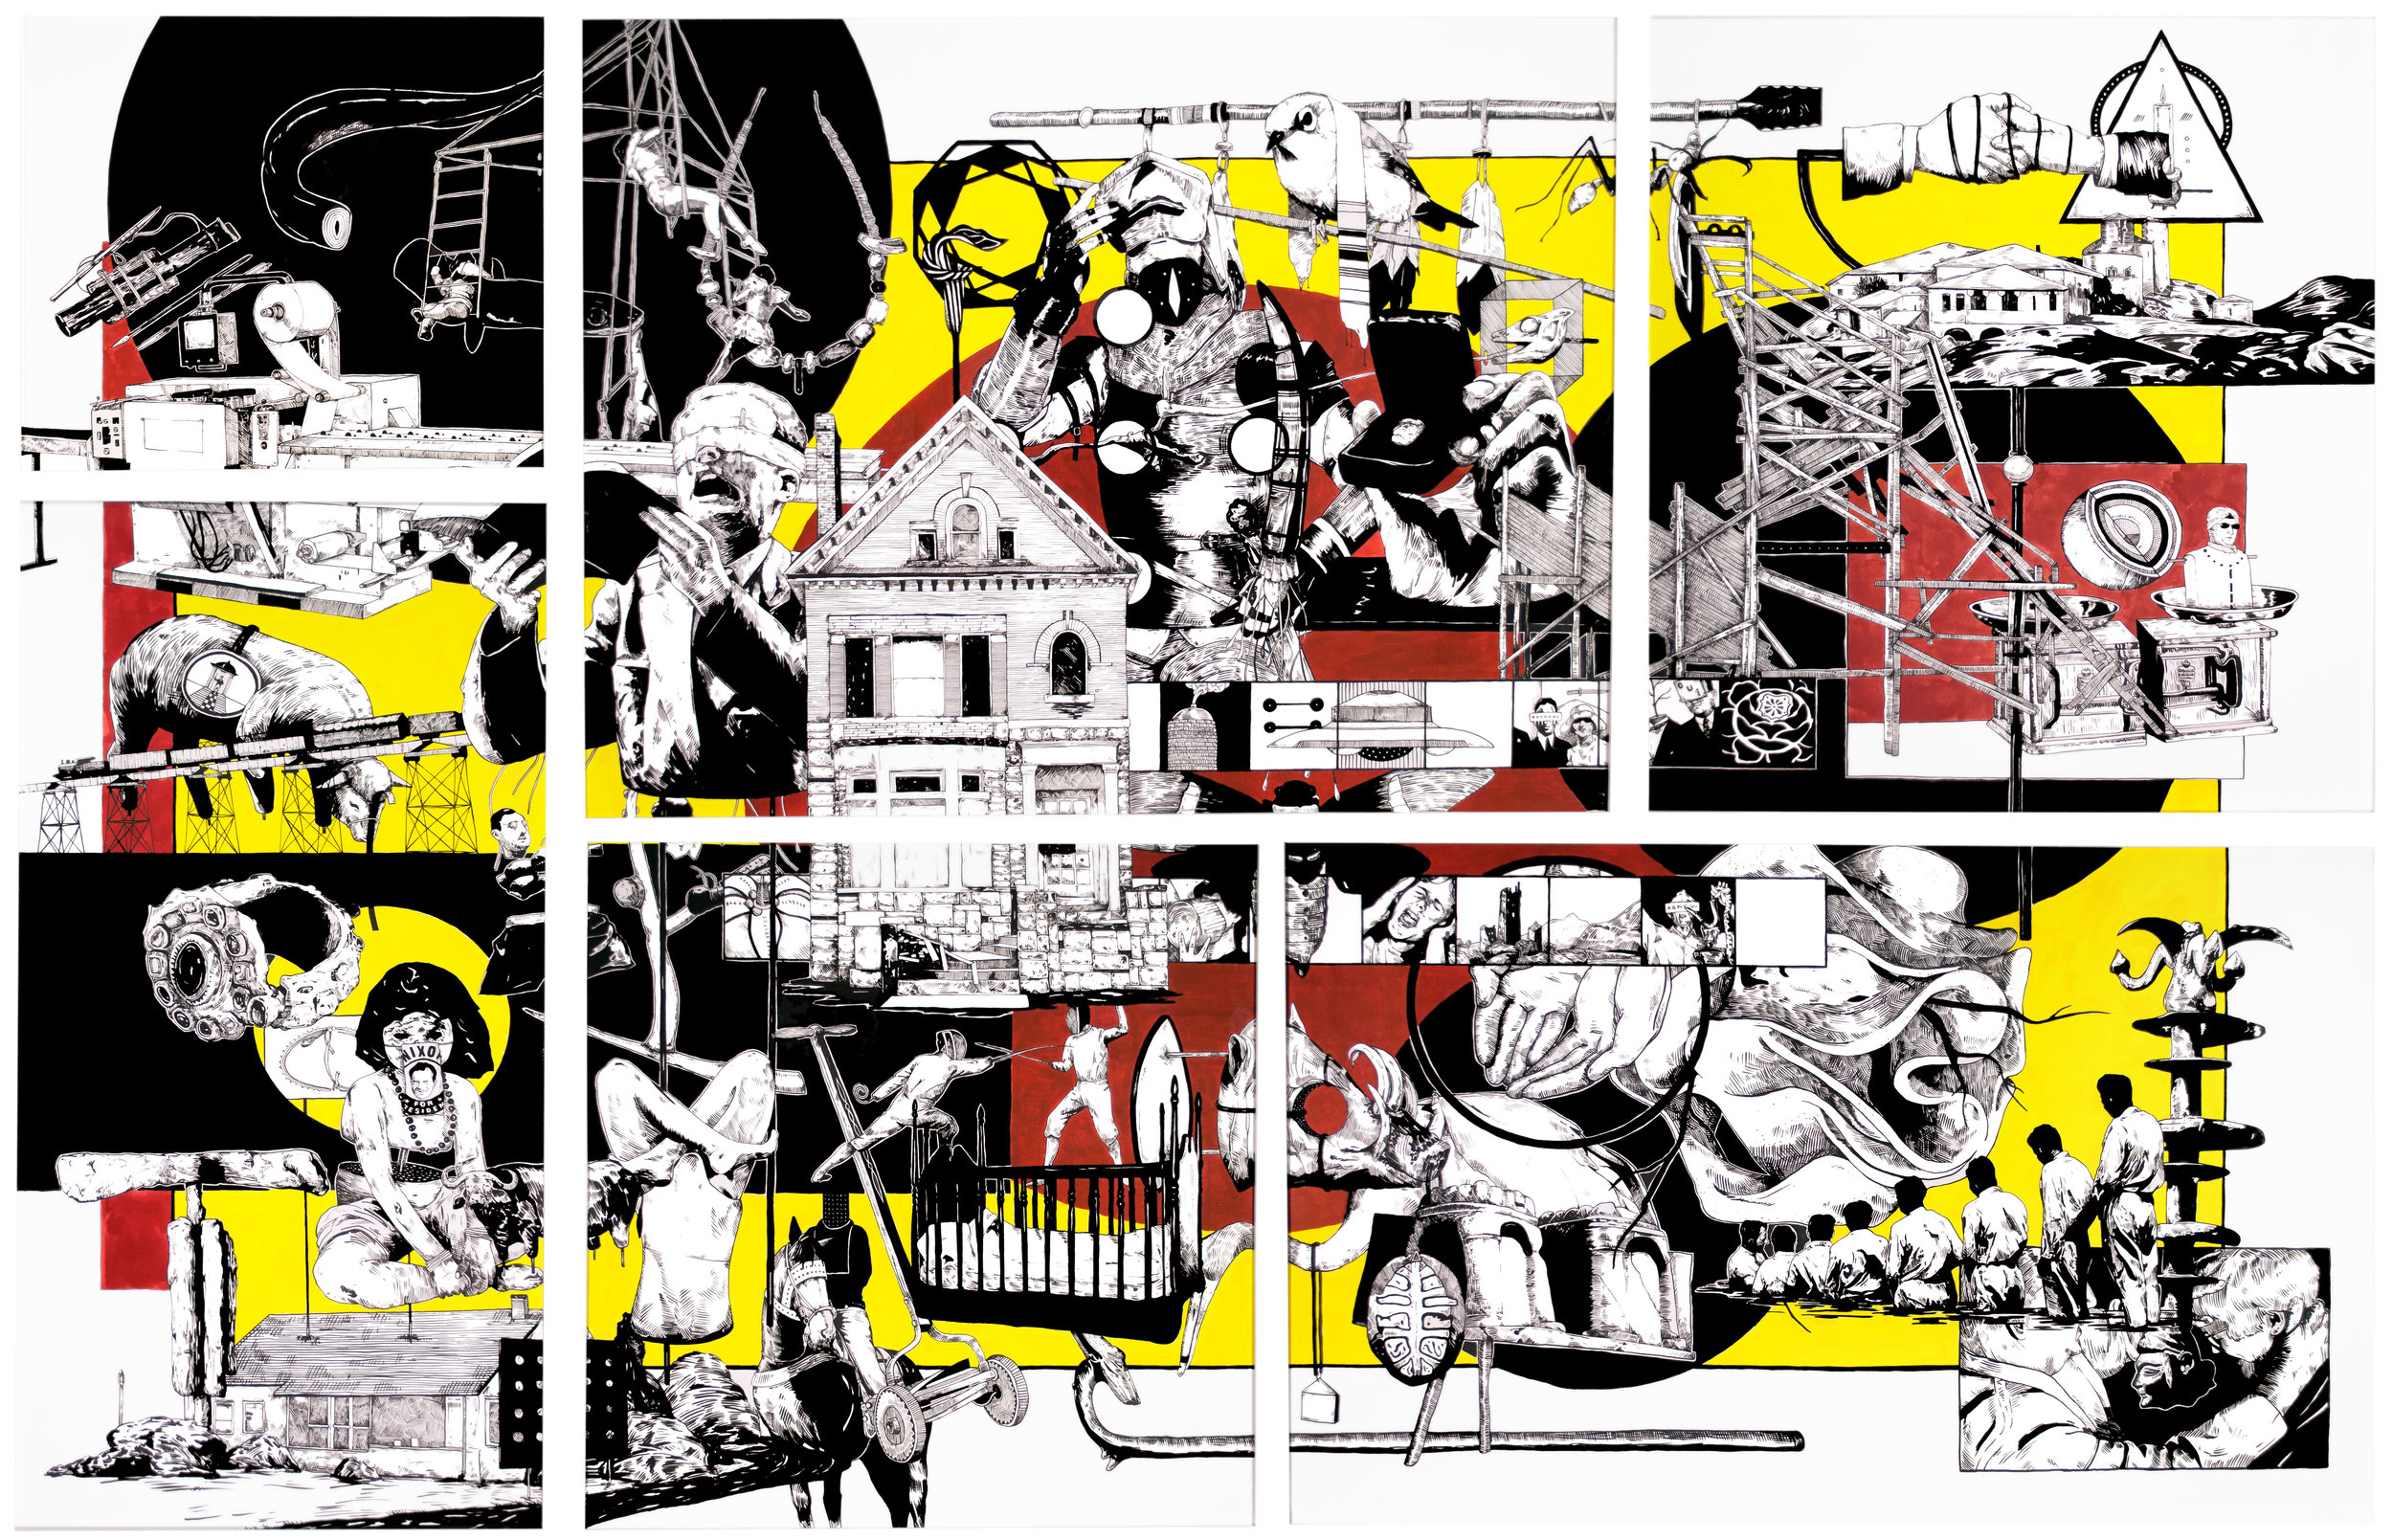 Lust, Crime & Holiness #30 , 2013 India ink on paper 72 x 108 inches